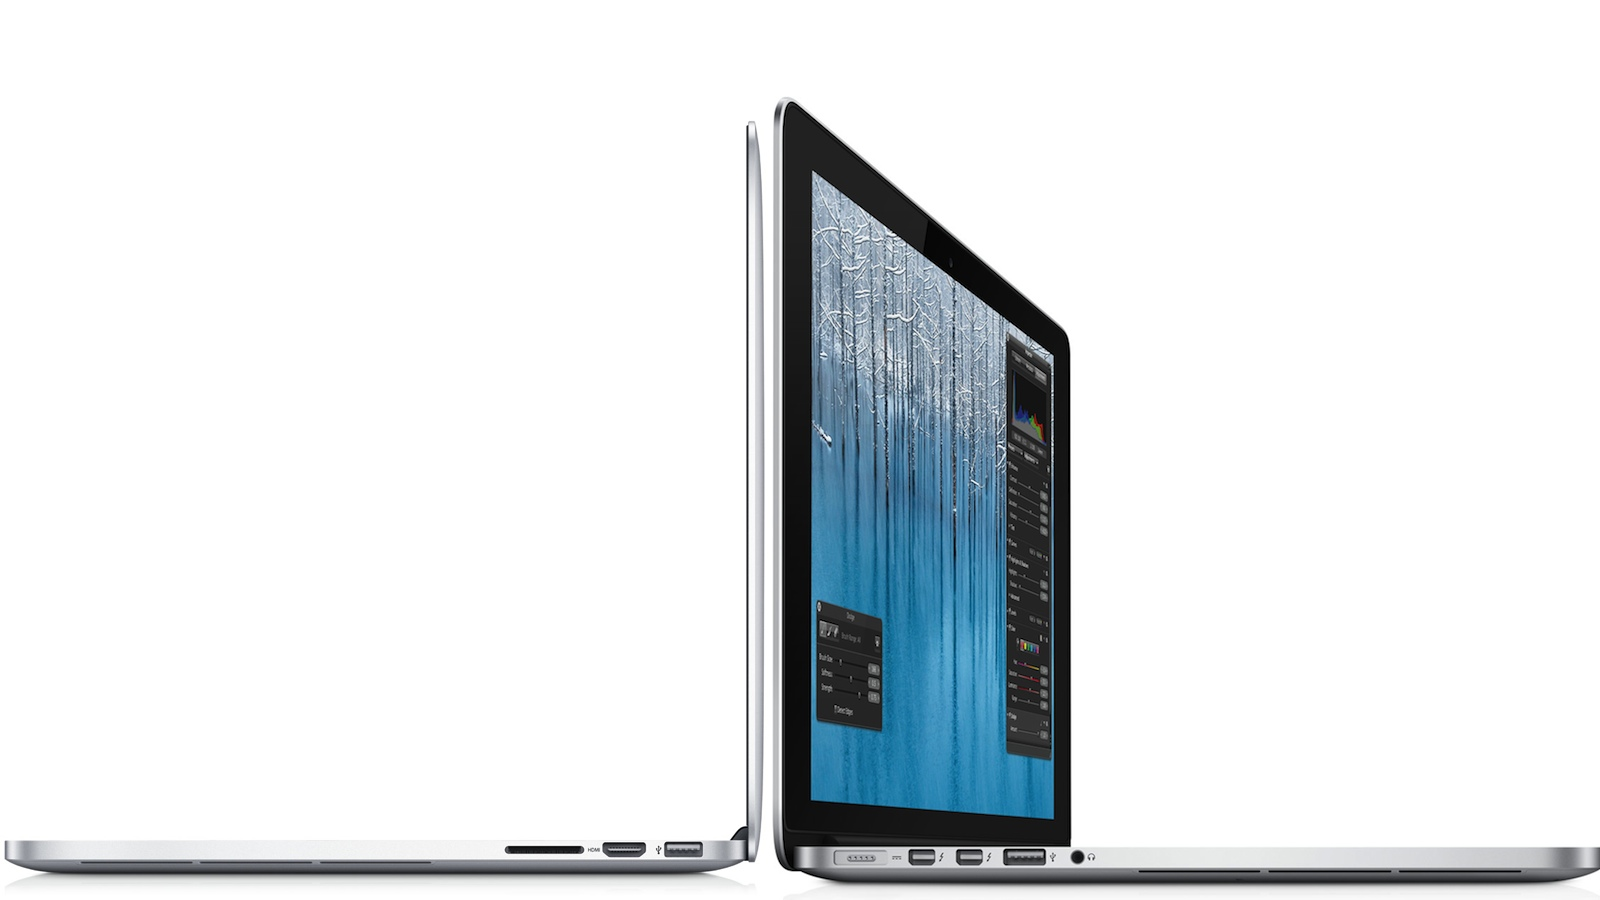 MacBook Pro With Retina Display Meta-Review: Gorgeously Powerful